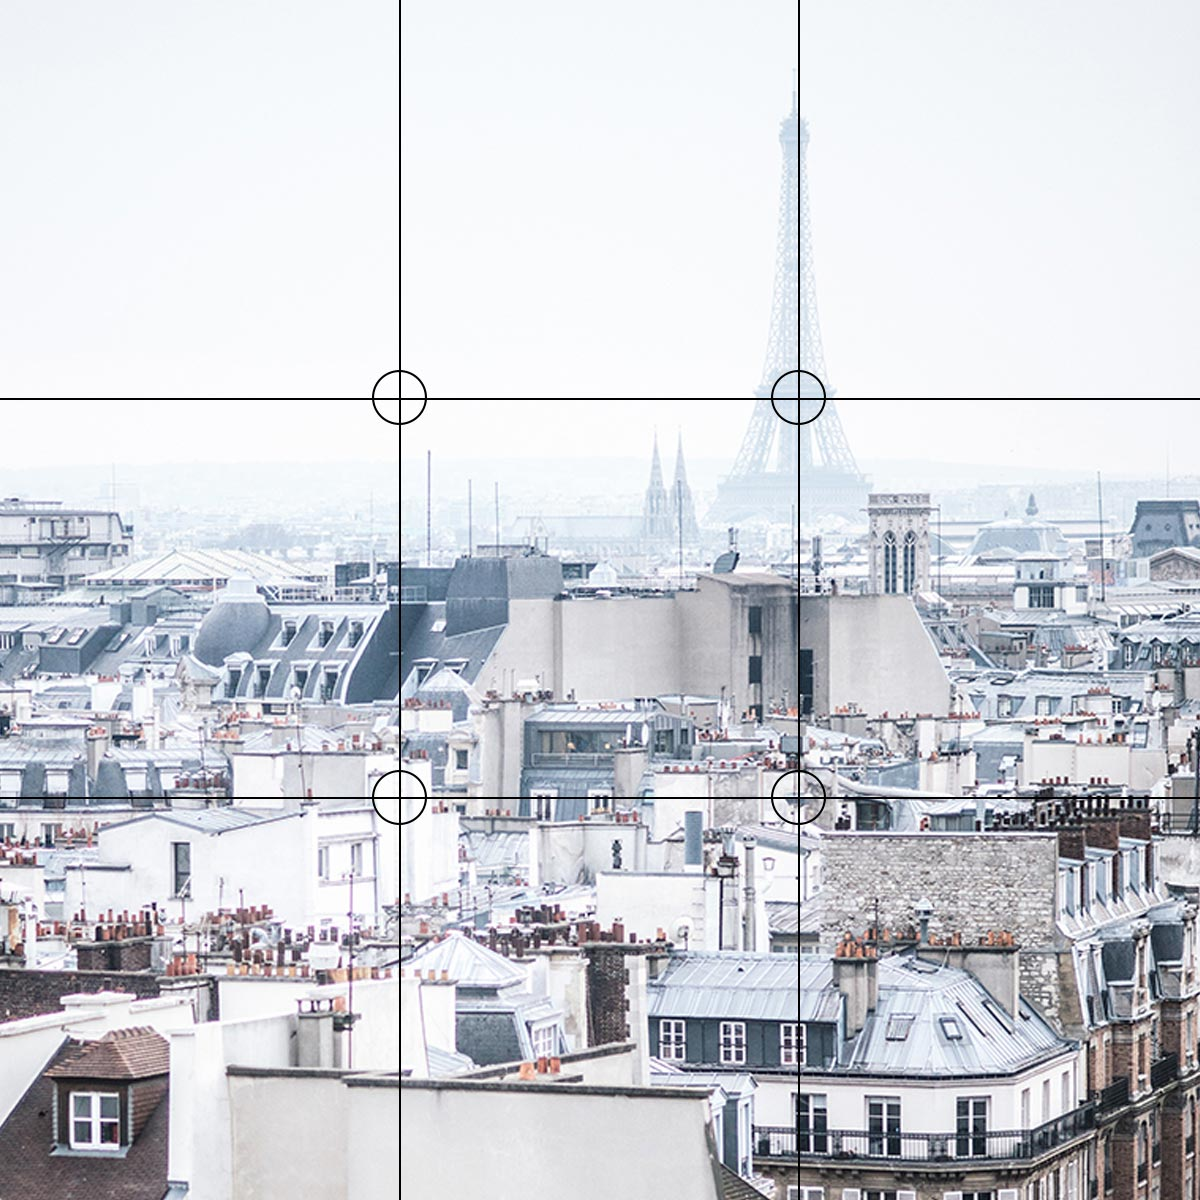 Photo of Paris from a rooftop with the Eiffel Tower in the background